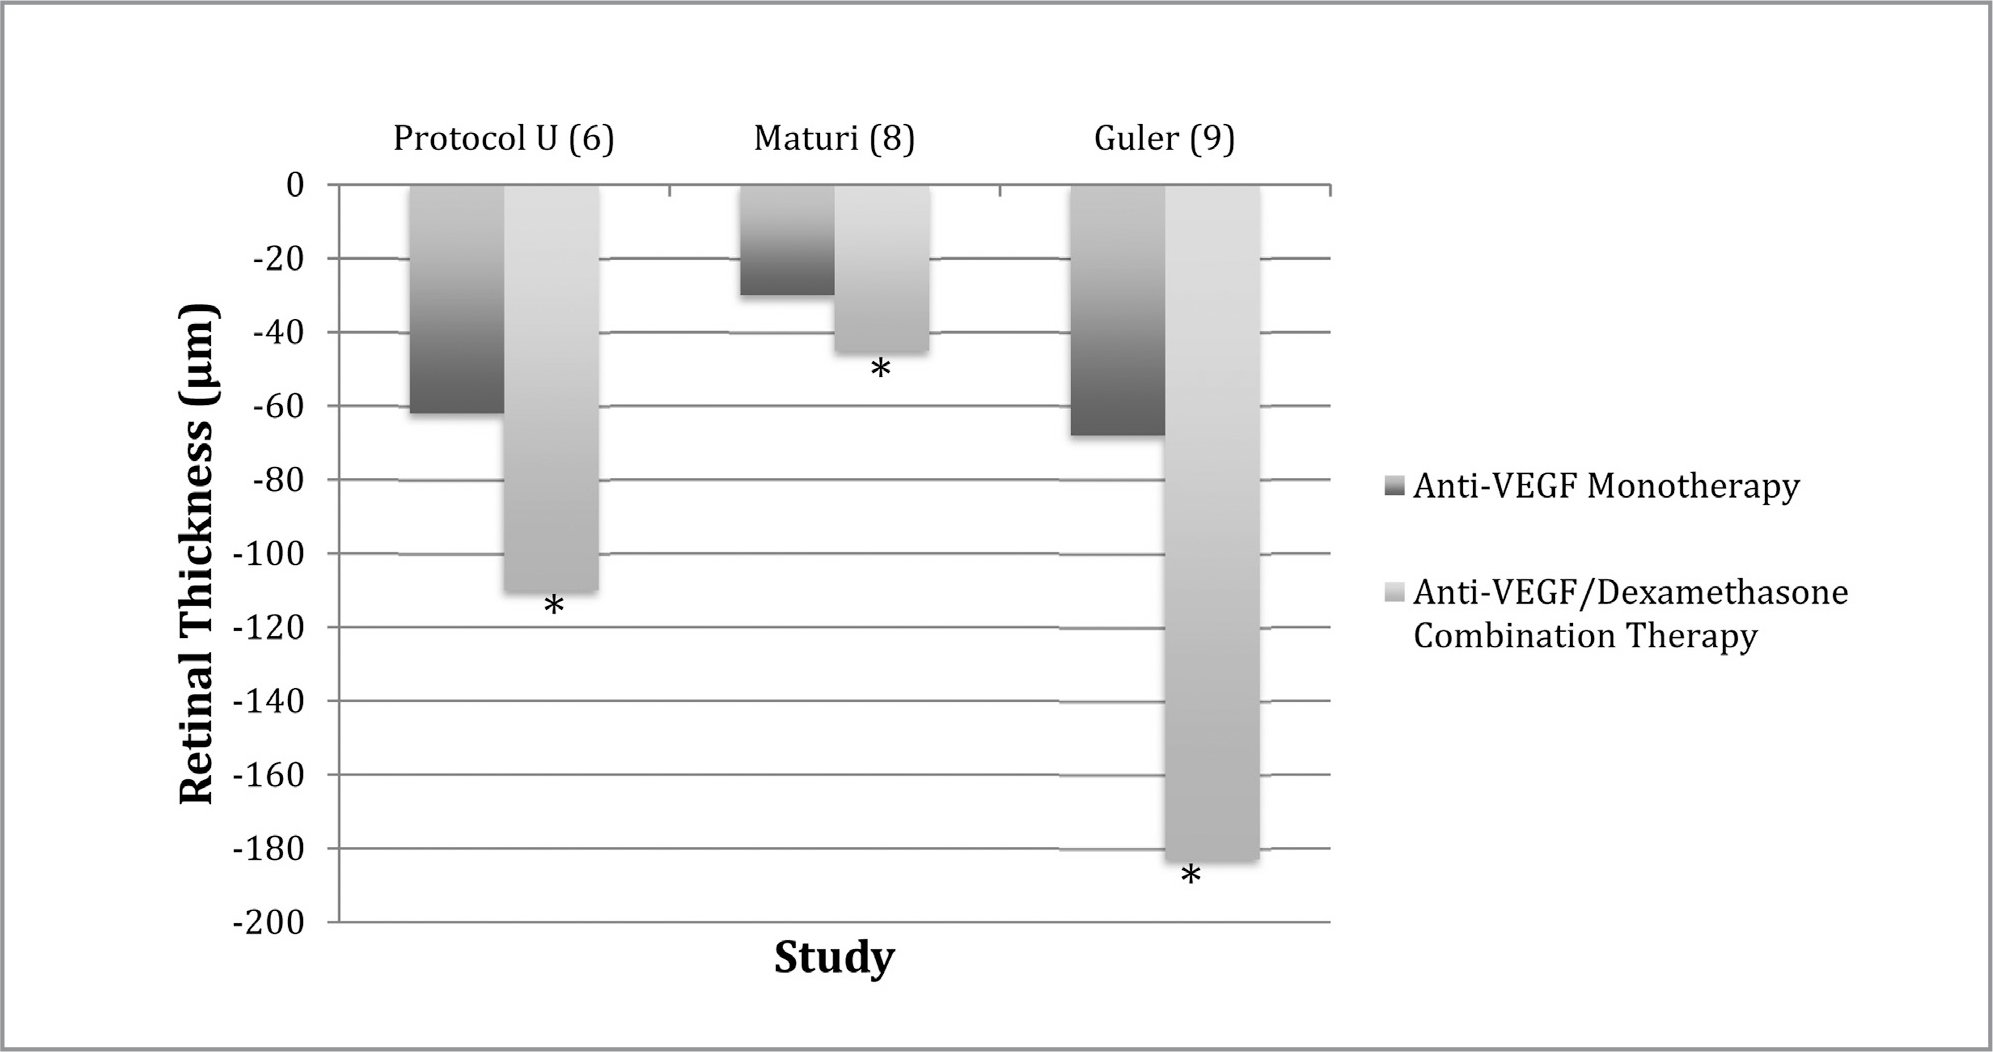 Change in retinal thickness after anti-vascular endothelial growth factor (VEGF) monotherapy and anti-VEGF / dexamethasone combination therapy.*P < .05 for anti-VEGF / dexamethasone combination therapy compared to anti-VEGF monotherapy.